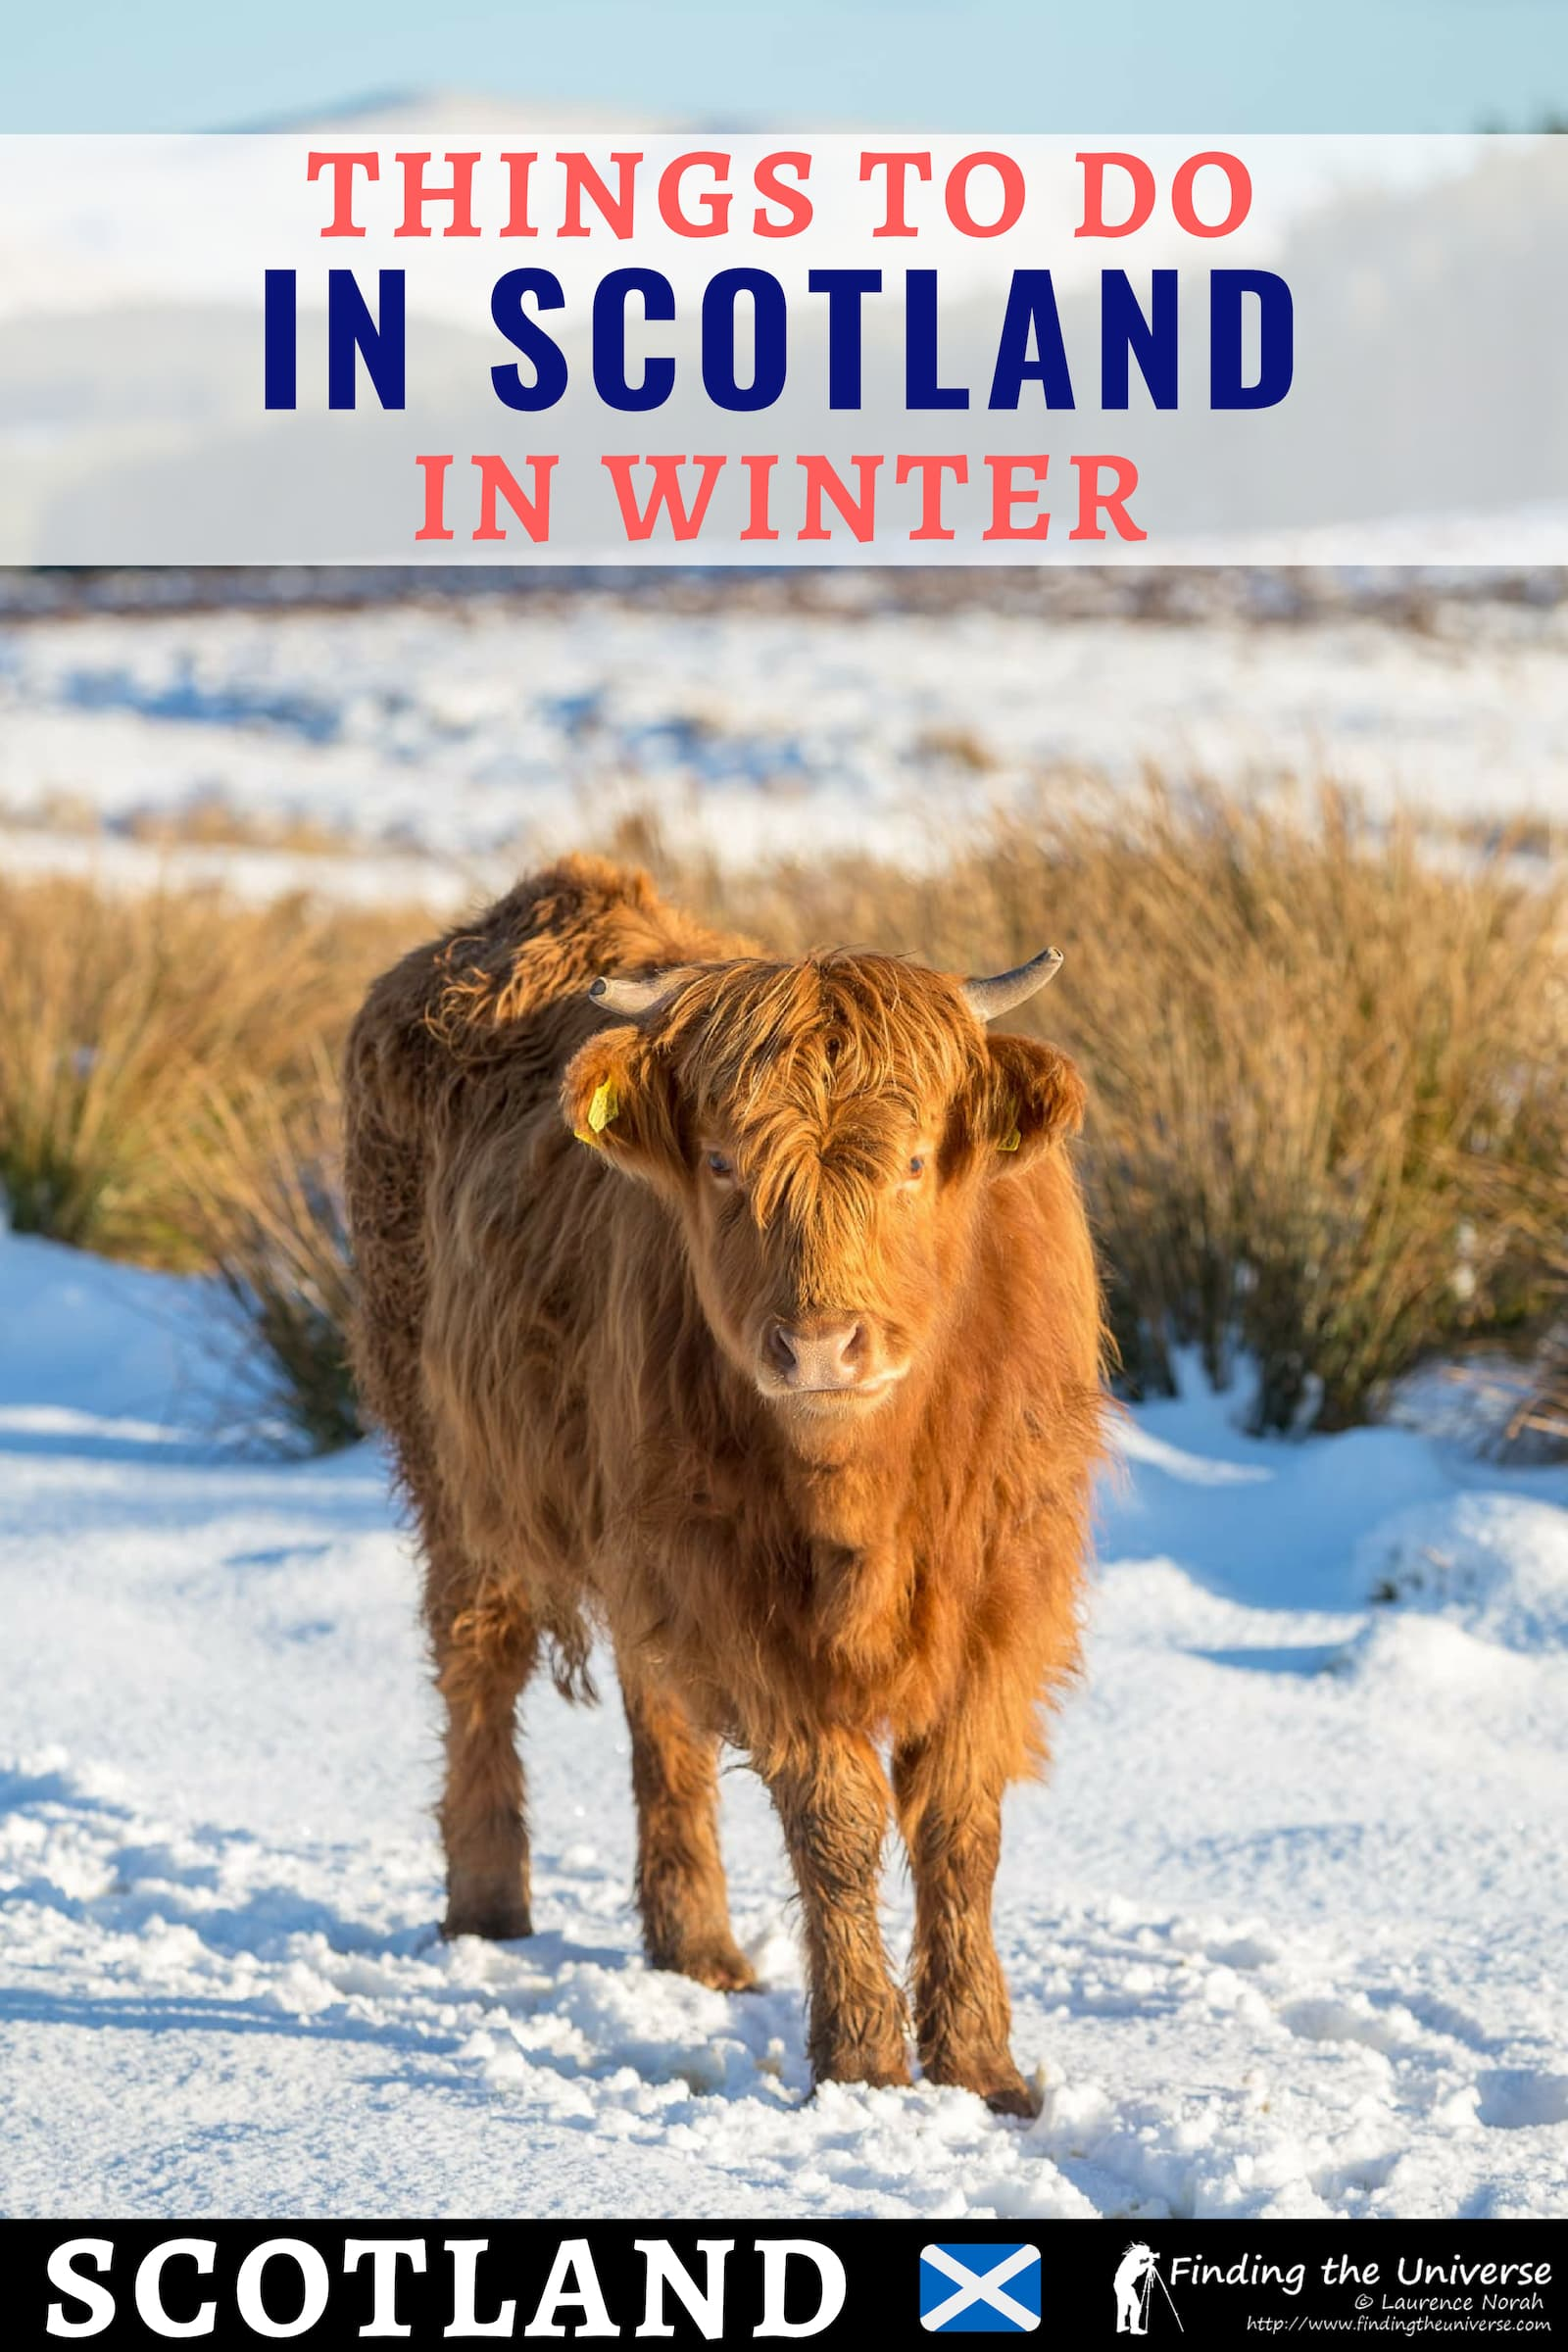 Everything you need to know about visiting Scotland in Winter, from what to do through to what to pack and tips for planning your trip. #travel #scotland #traveltips #uk #winter